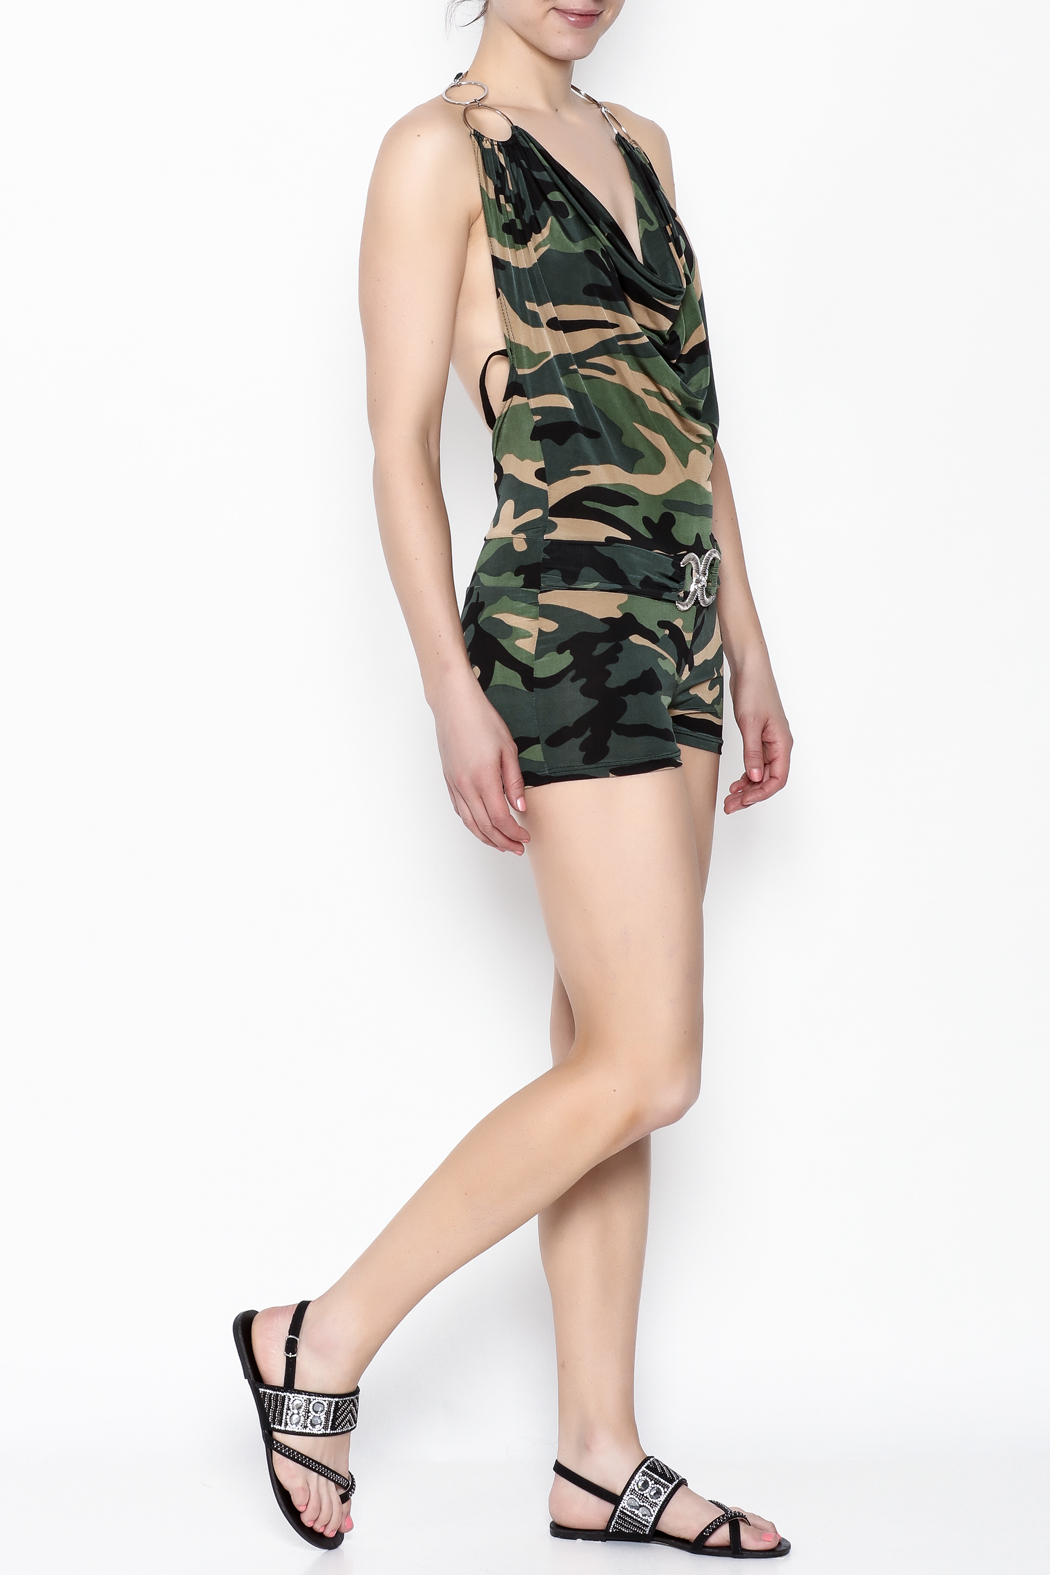 demore Camofluage Romper - Side Cropped Image